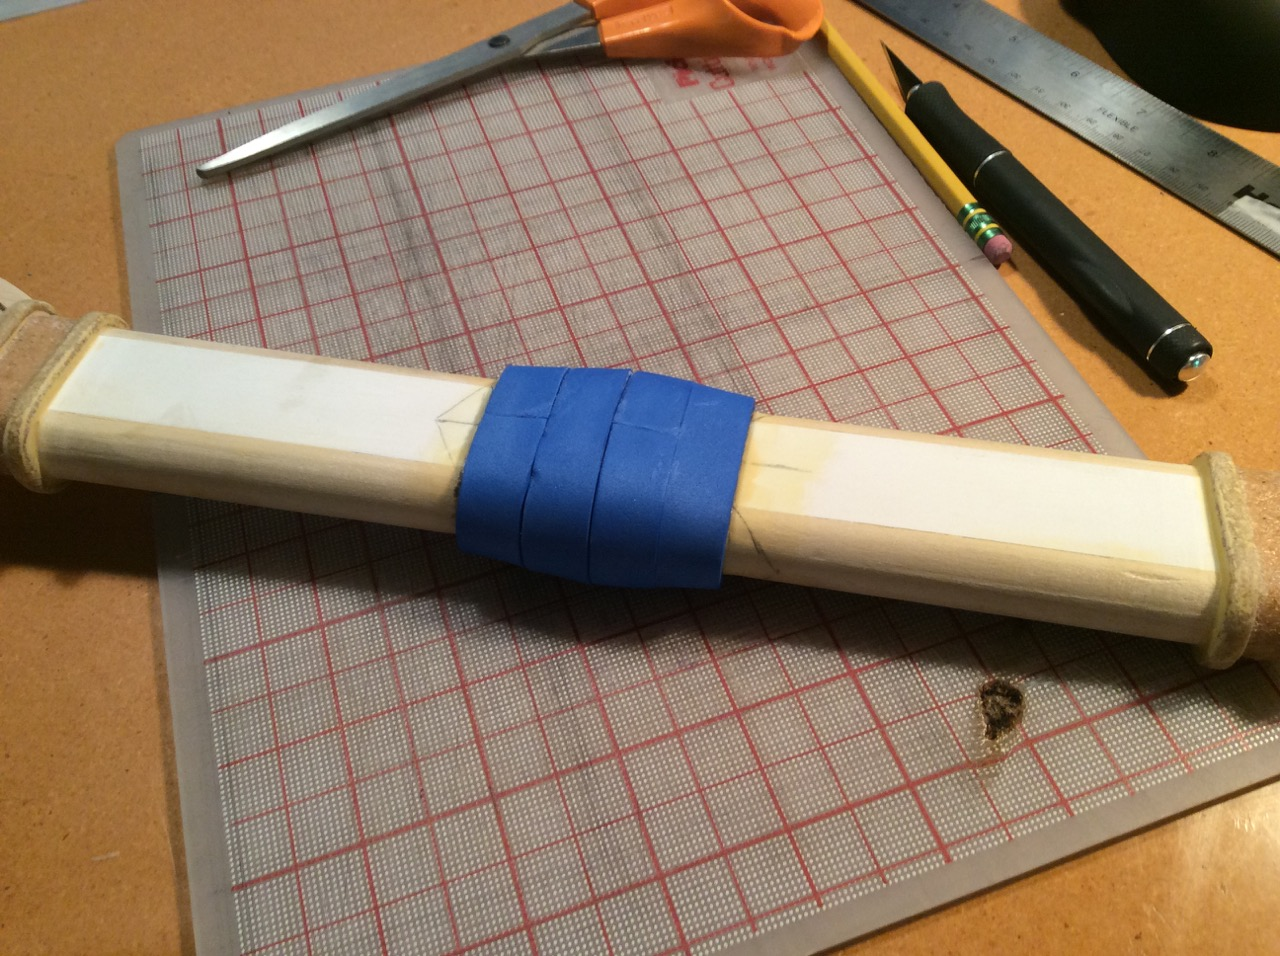 Step 2: The center pommel need to be thicker so I beefed it up with 3mm craft foam. I had to use strips because of the taper. I then smoothed it out and filled in the gaps with wood filler (sorry forgot to take a pic).